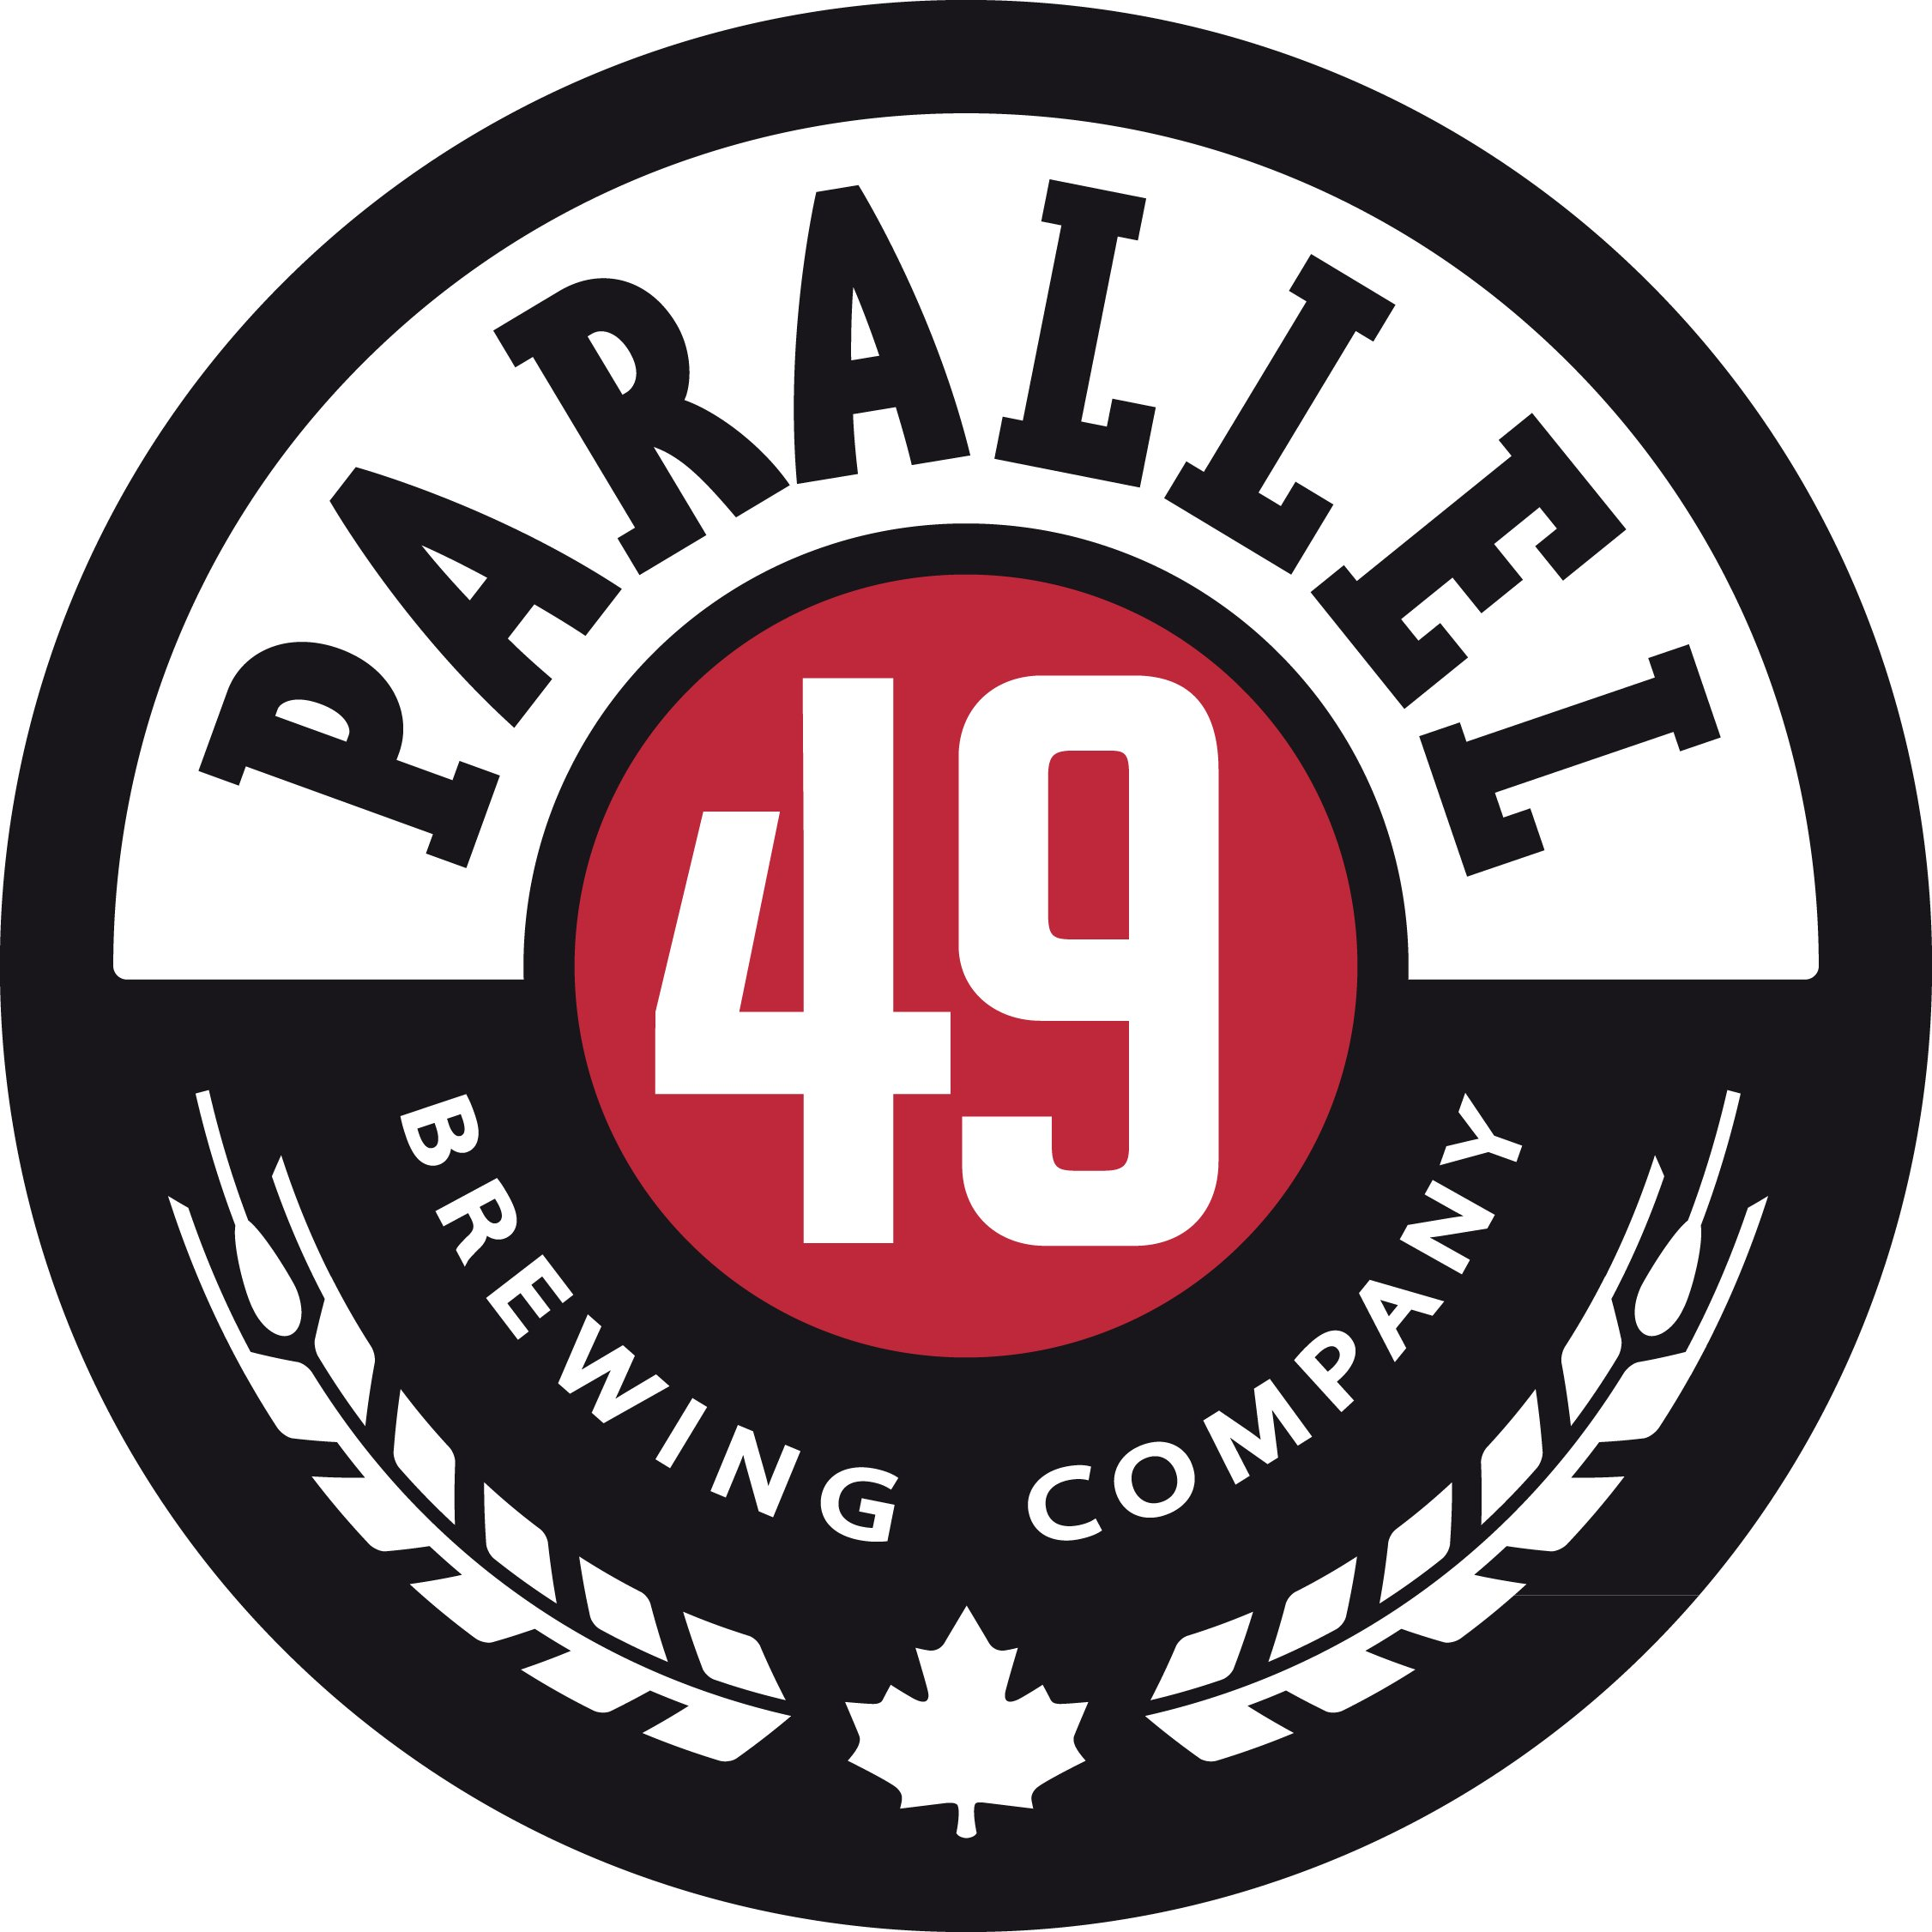 Copy of Parallel 49 Brewing